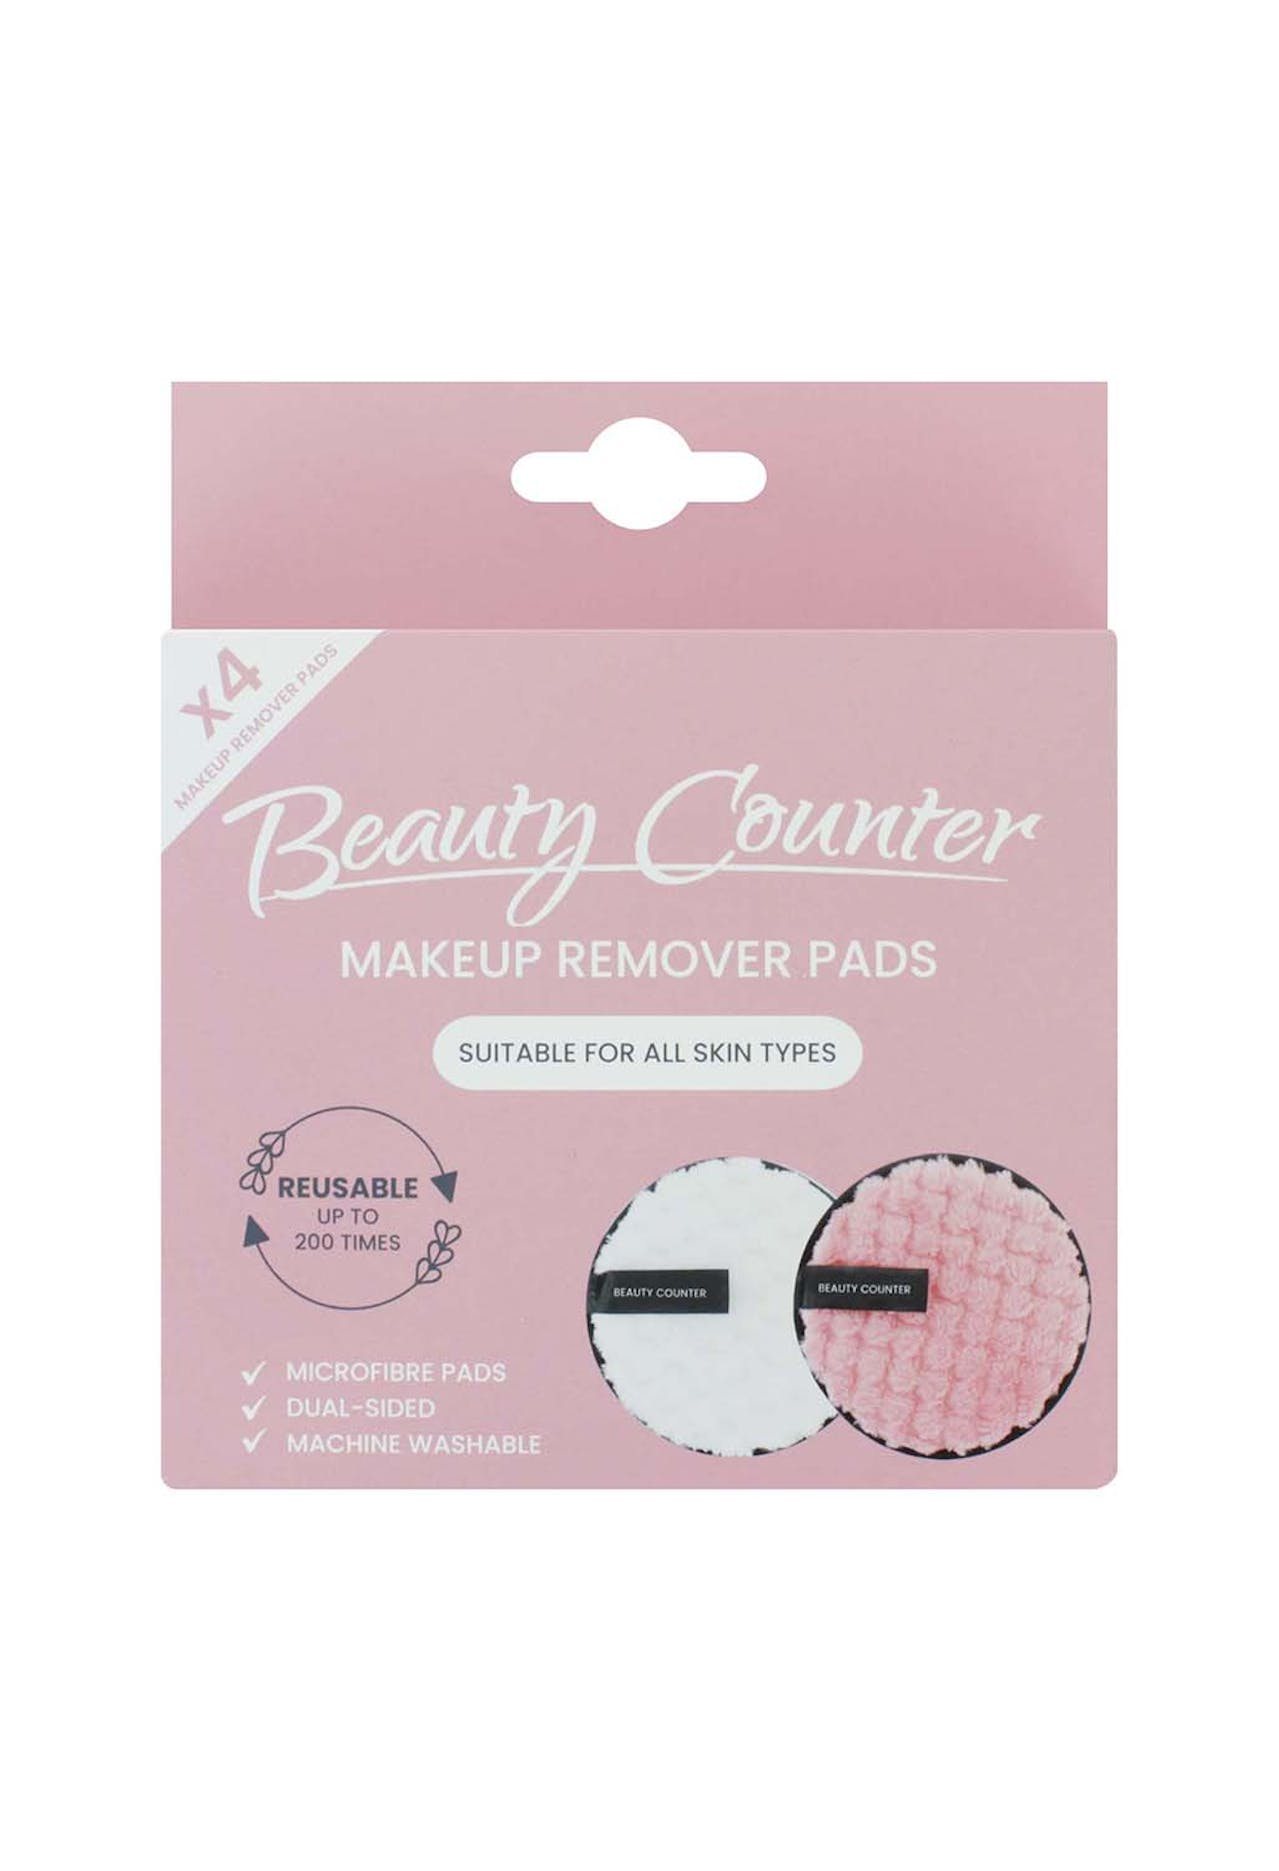 BEAUTY COUNTER MICROFIBRE MAKEUP REMOVER PADS 4 PACK